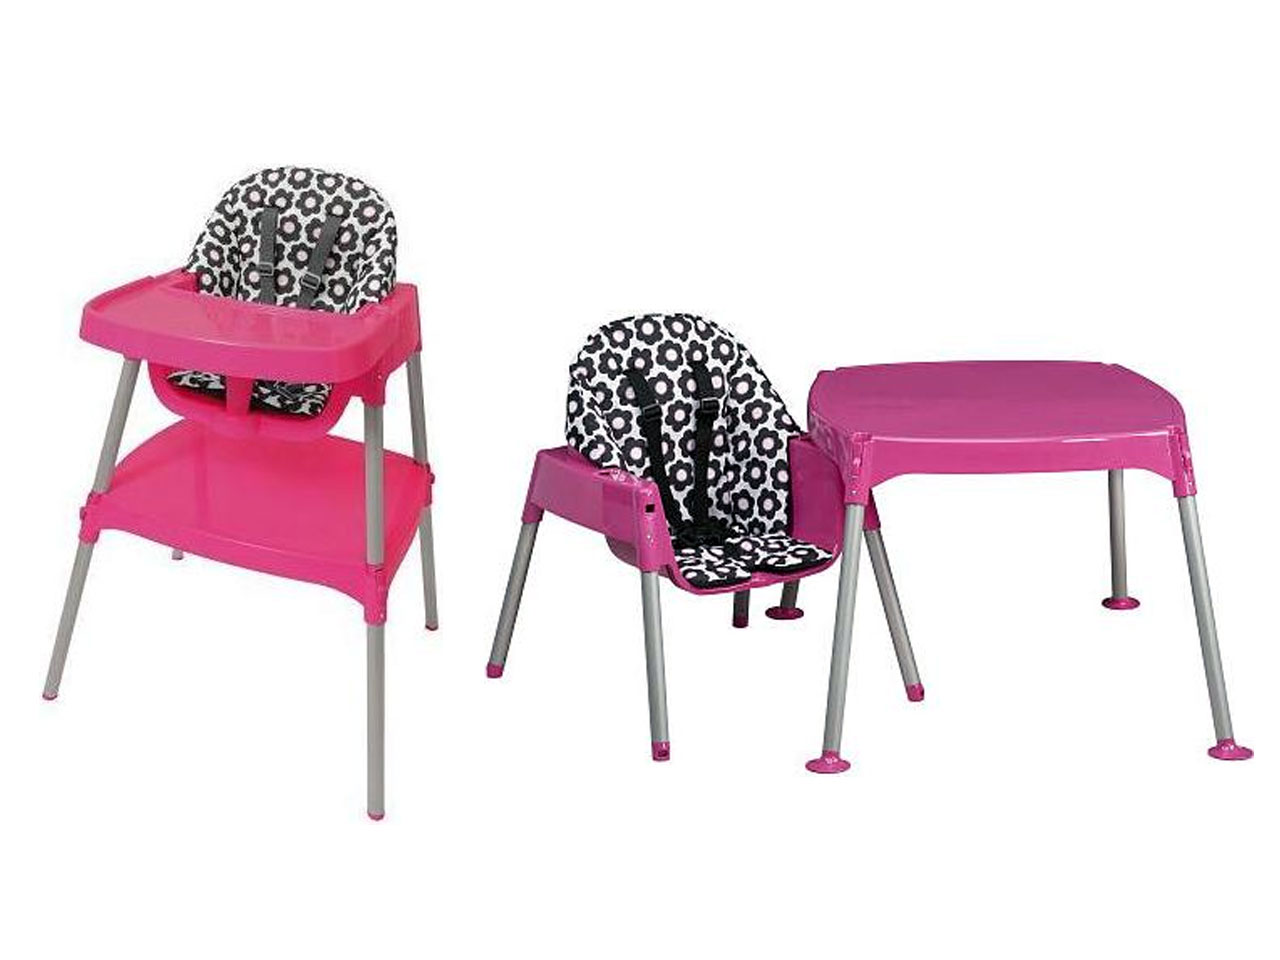 evenflo high chair easy fold recall ergonomic recliner convertible chairs recalled amid reports of kids falling